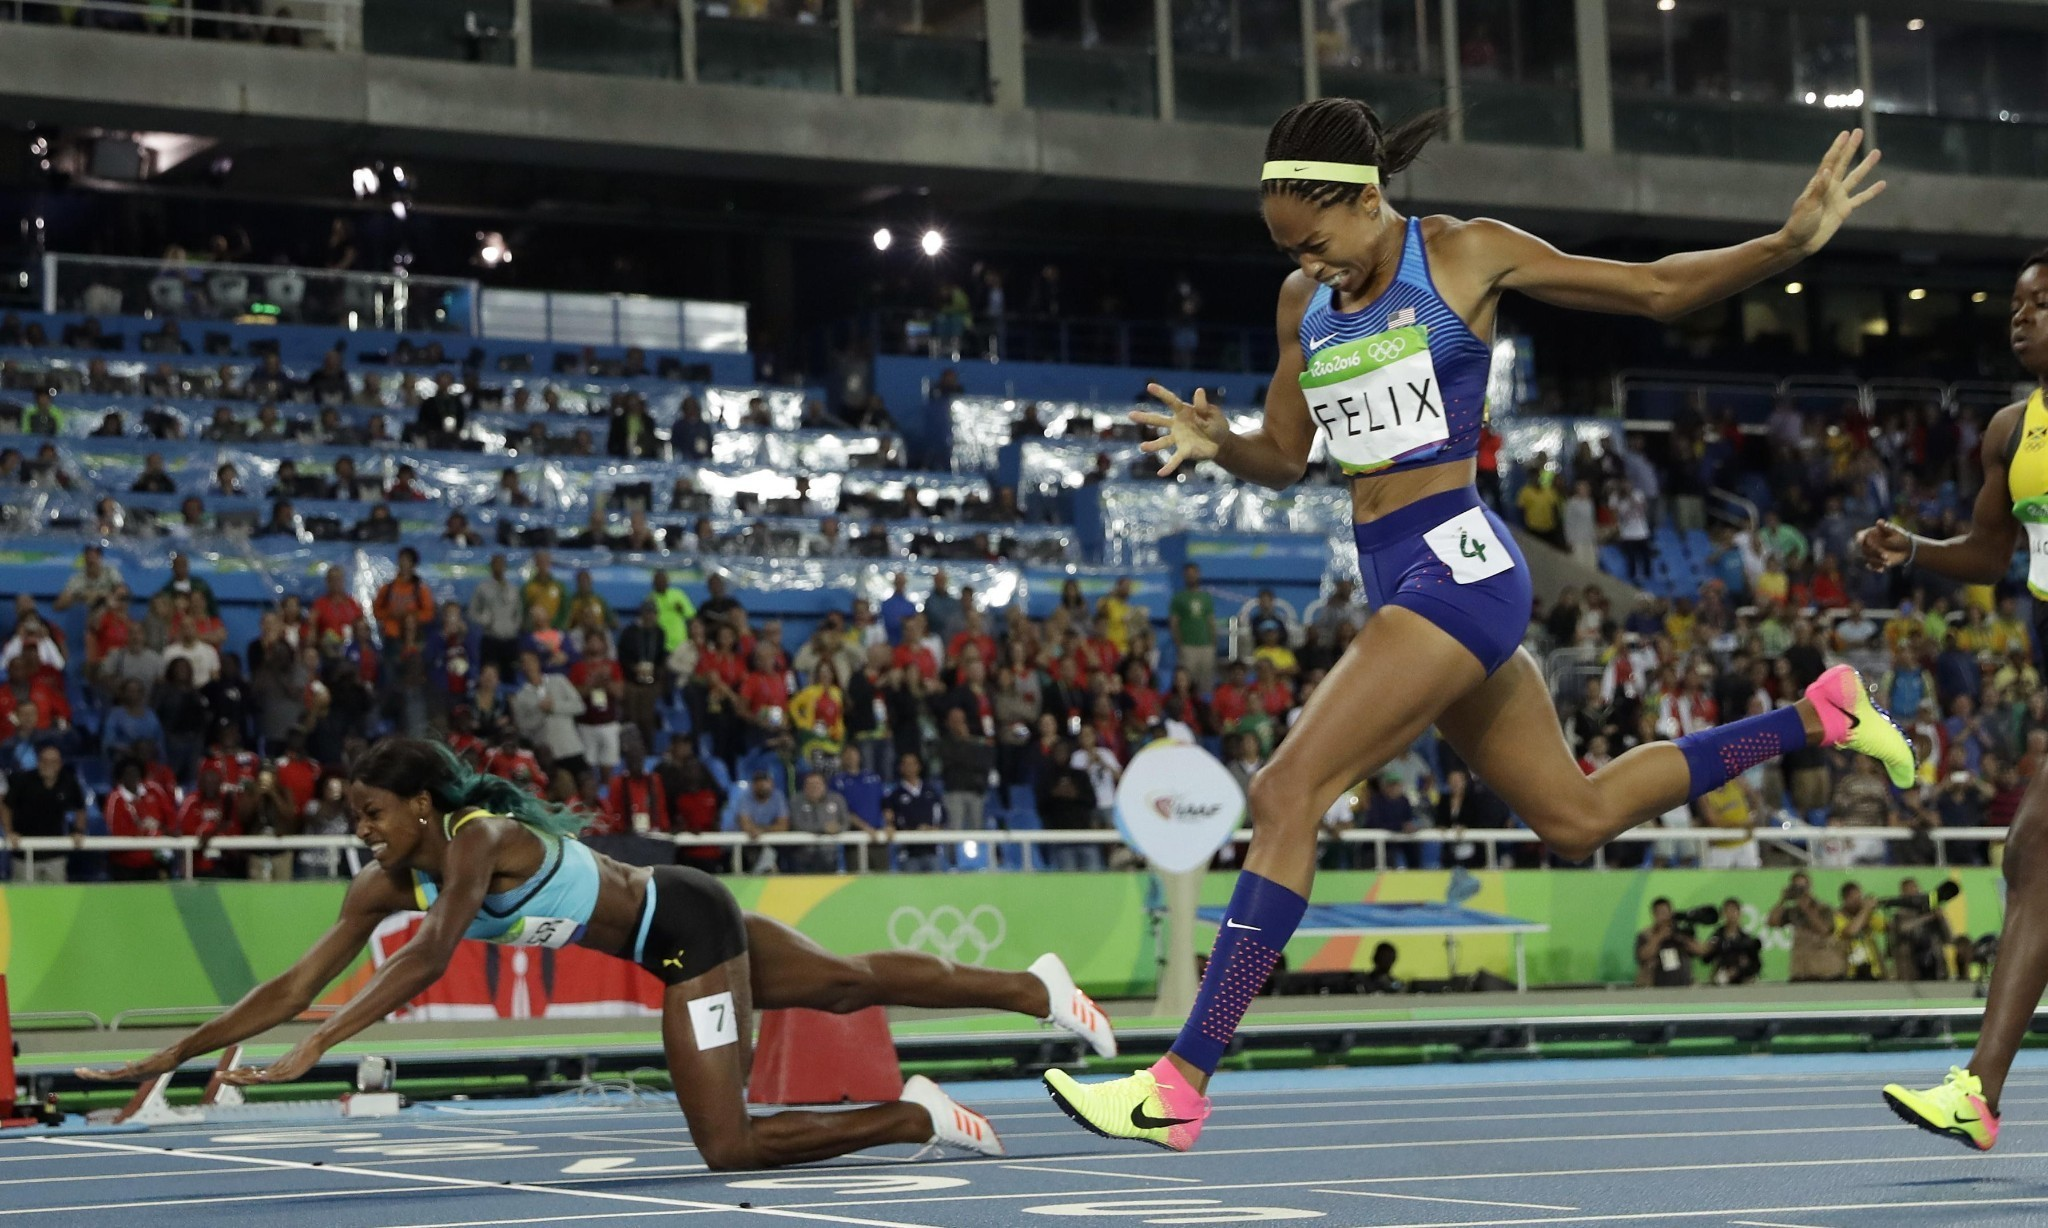 Shaunae Miller's dive denies Allyson Felix 400m gold in dramatic final